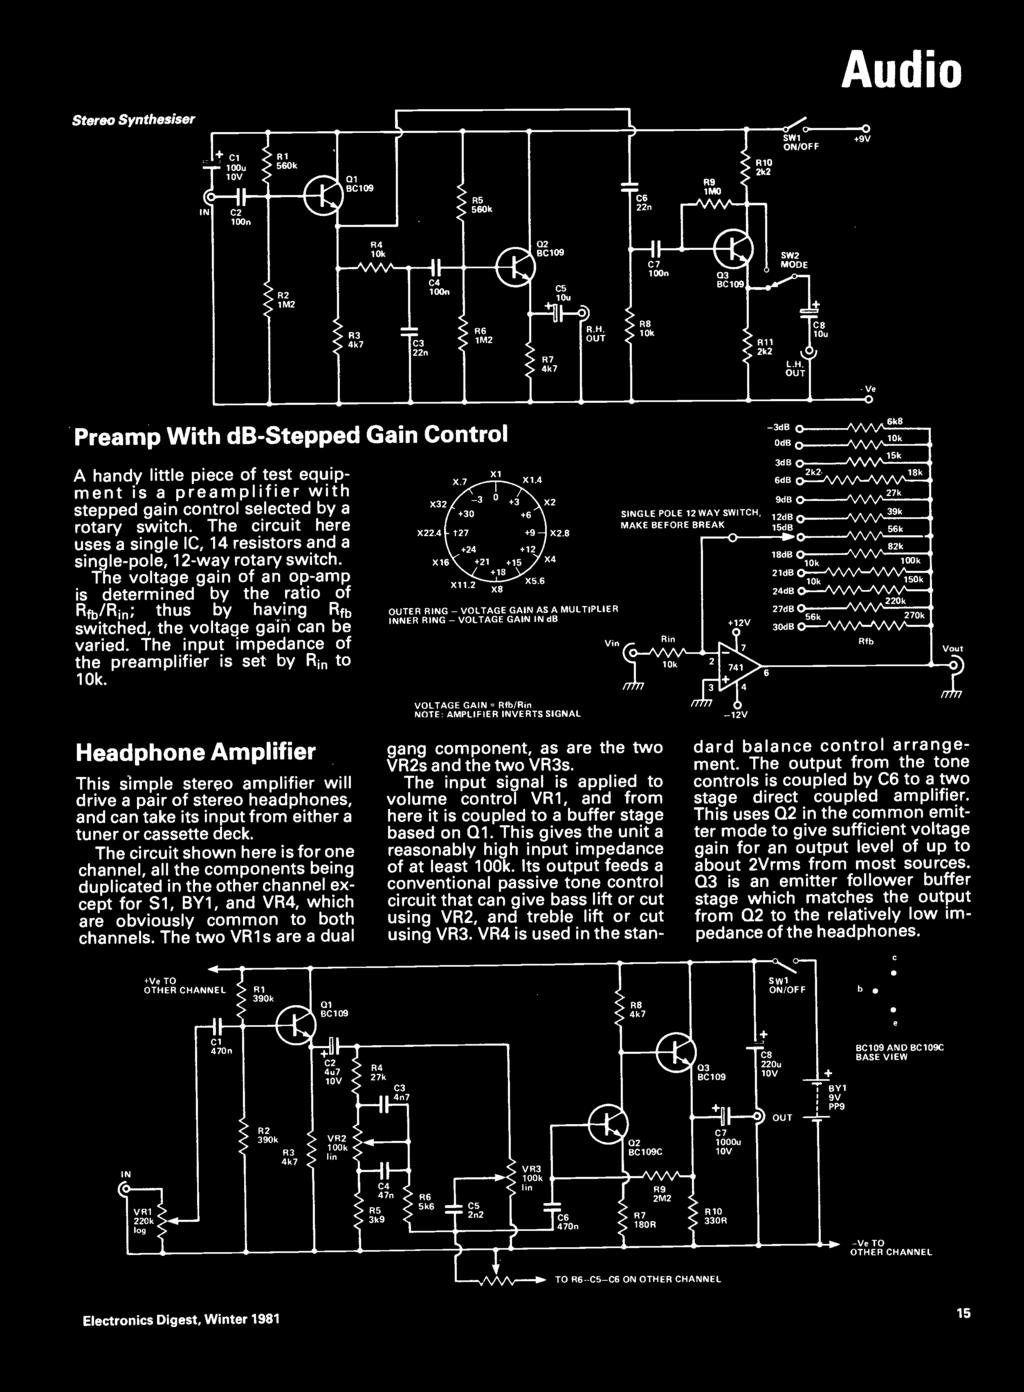 Sw1 On Off O Amplifier C5 220n Input 150 Cirtu Bc109c Out C7 10u Mono Stereo Preamp Based Lm387 Audio Synthesiser T7 56k R9 2k2 9v In 1n R5